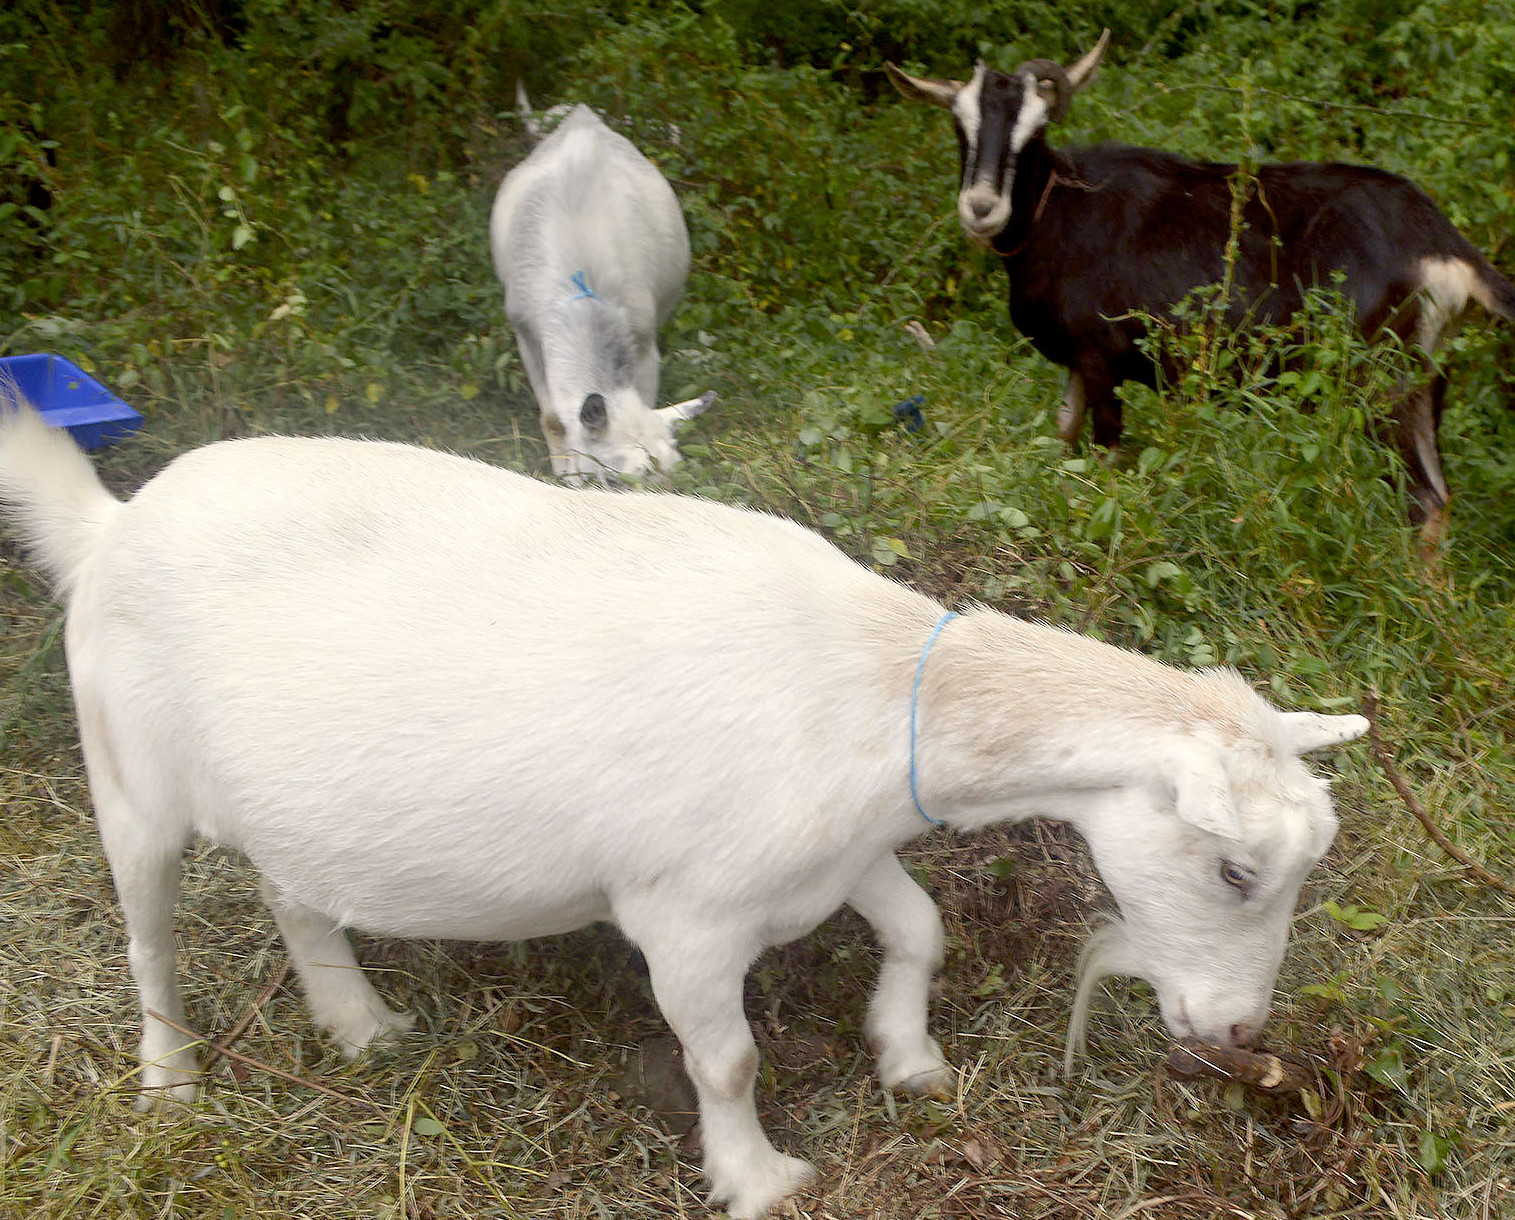 Goats from Green Goats farm in Rhinebeck, N.Y., lunch on poison ivy and other invasive plants after arriving earlier in the day at the Nature Center in Fanwood, NJ, Monday, Aug. 10, 2015. The goats are being used to rid the center of several invasive plants. (Photo by Brian Horton)